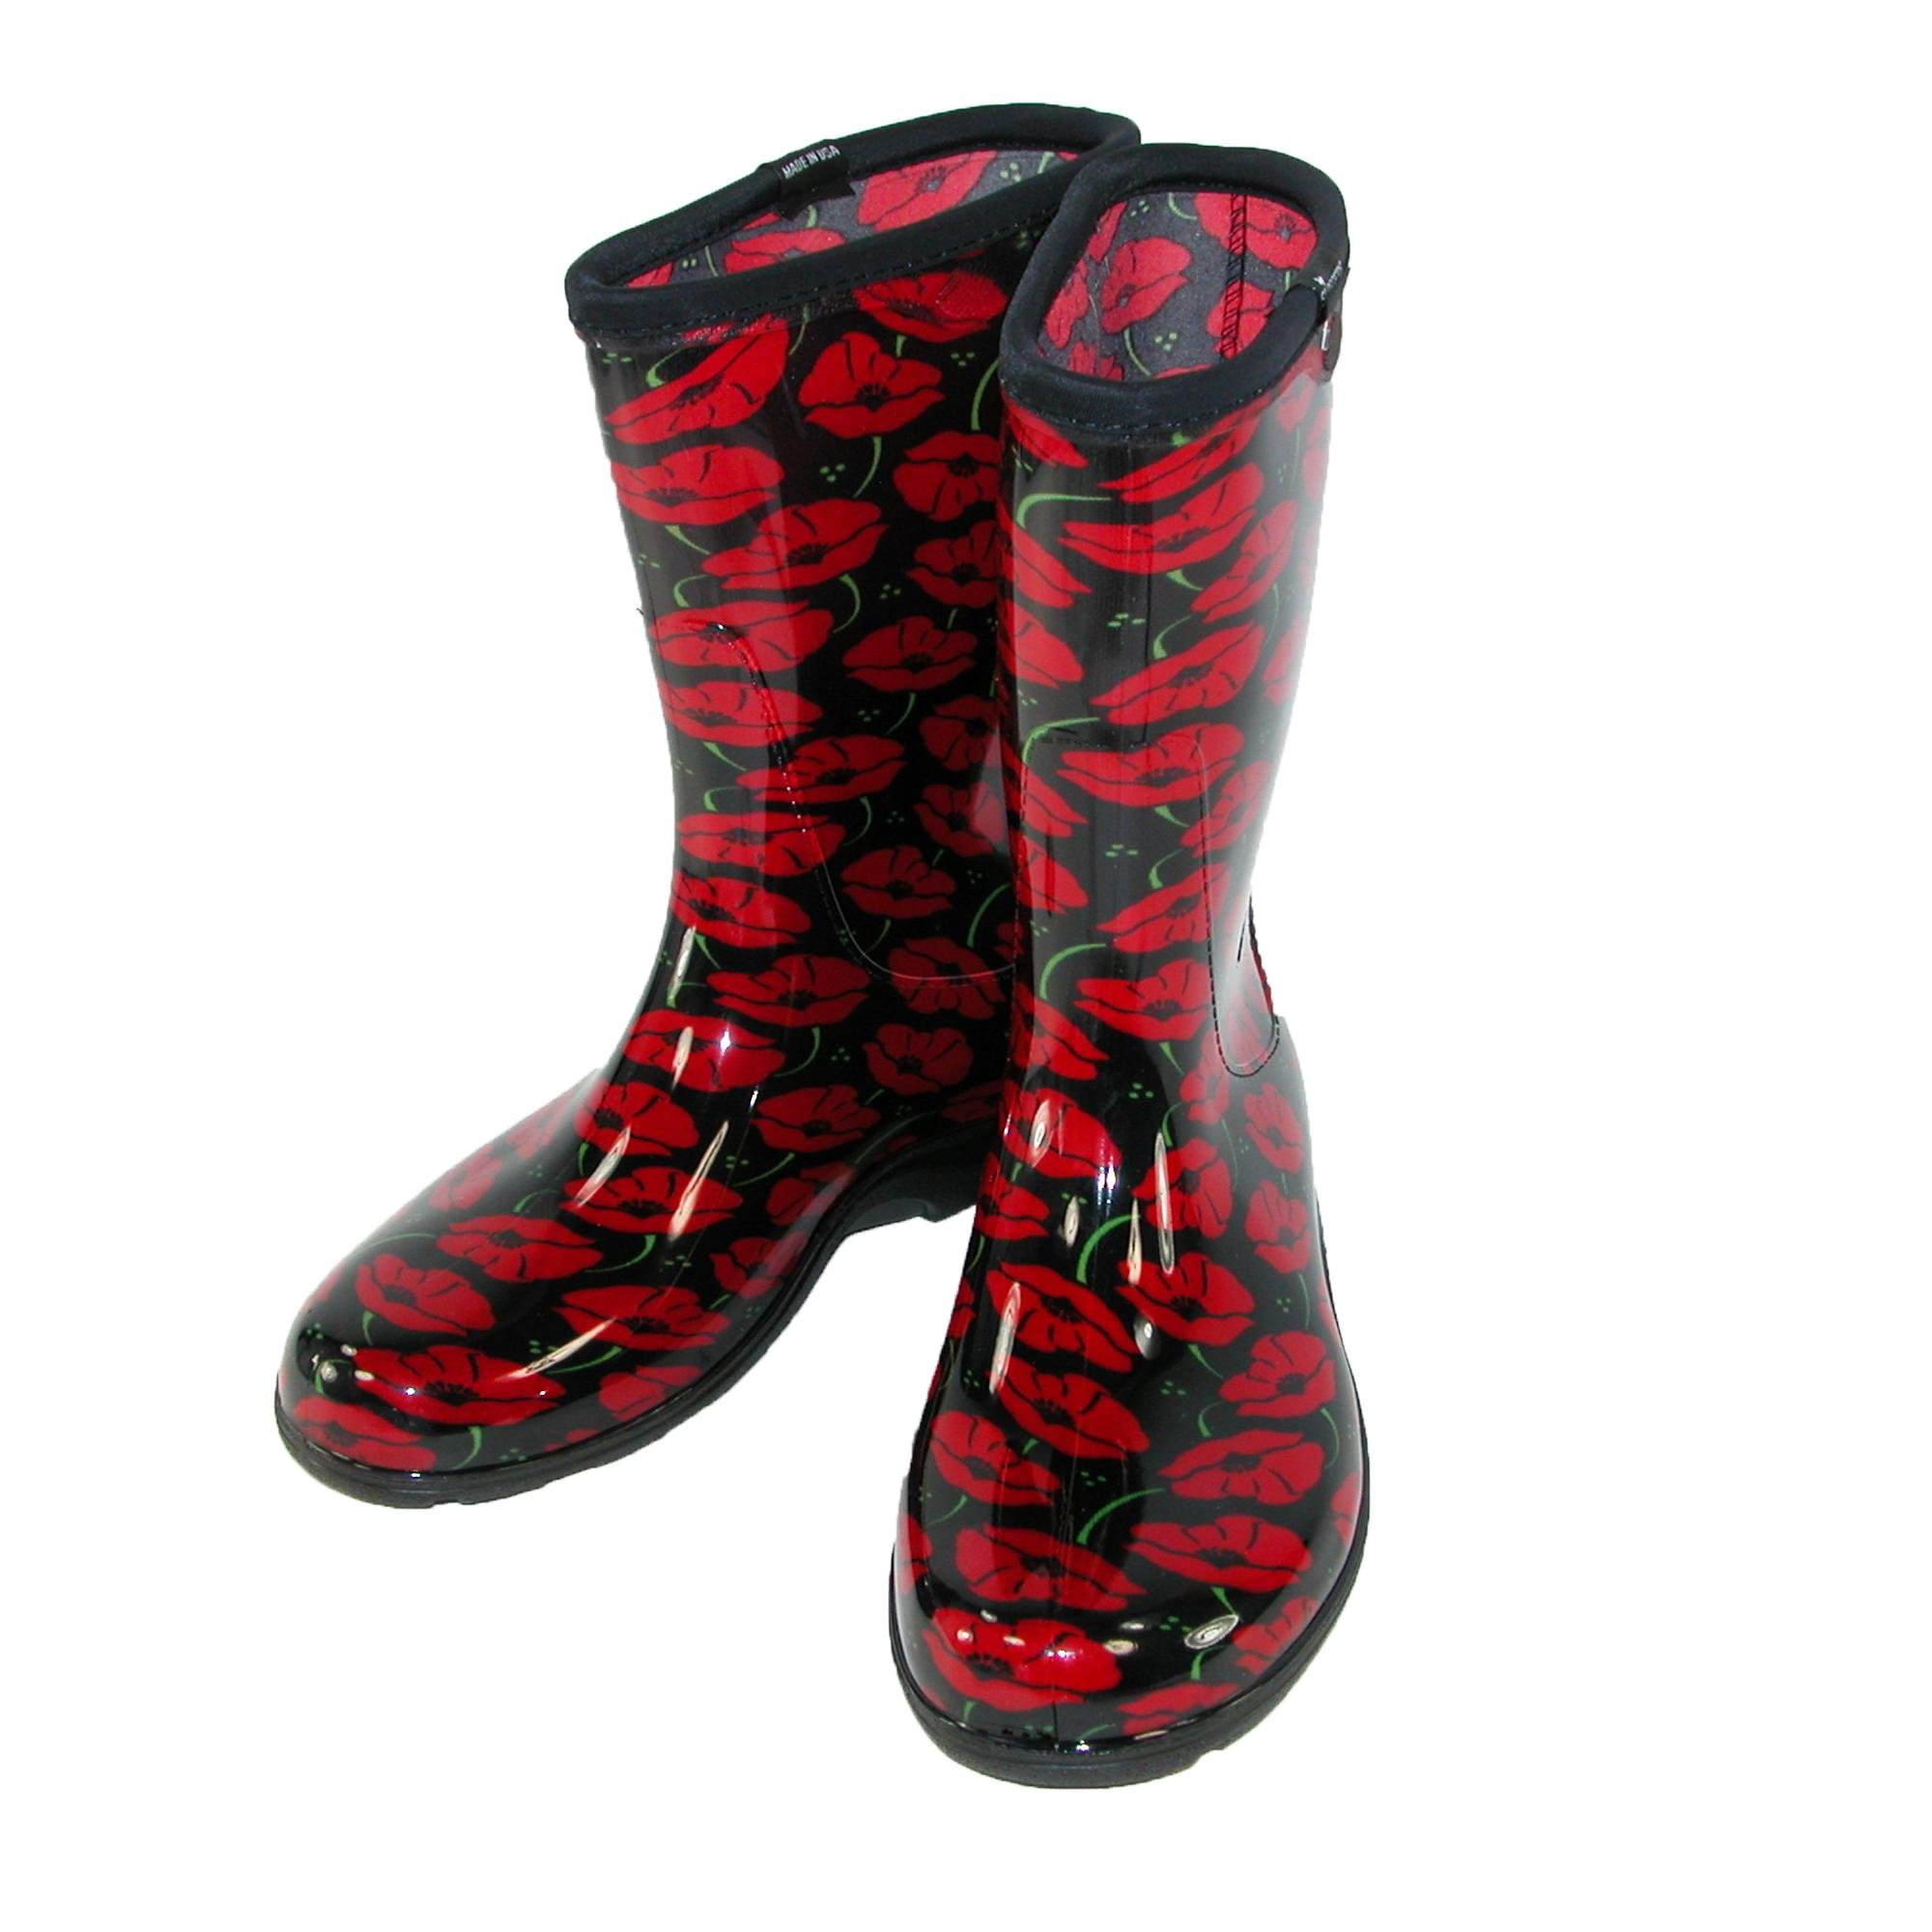 Sloggers Women's Waterproof Rain and Garden Boot with Comfort Insole, Poppy Red, Size 10, Style 5016POR10